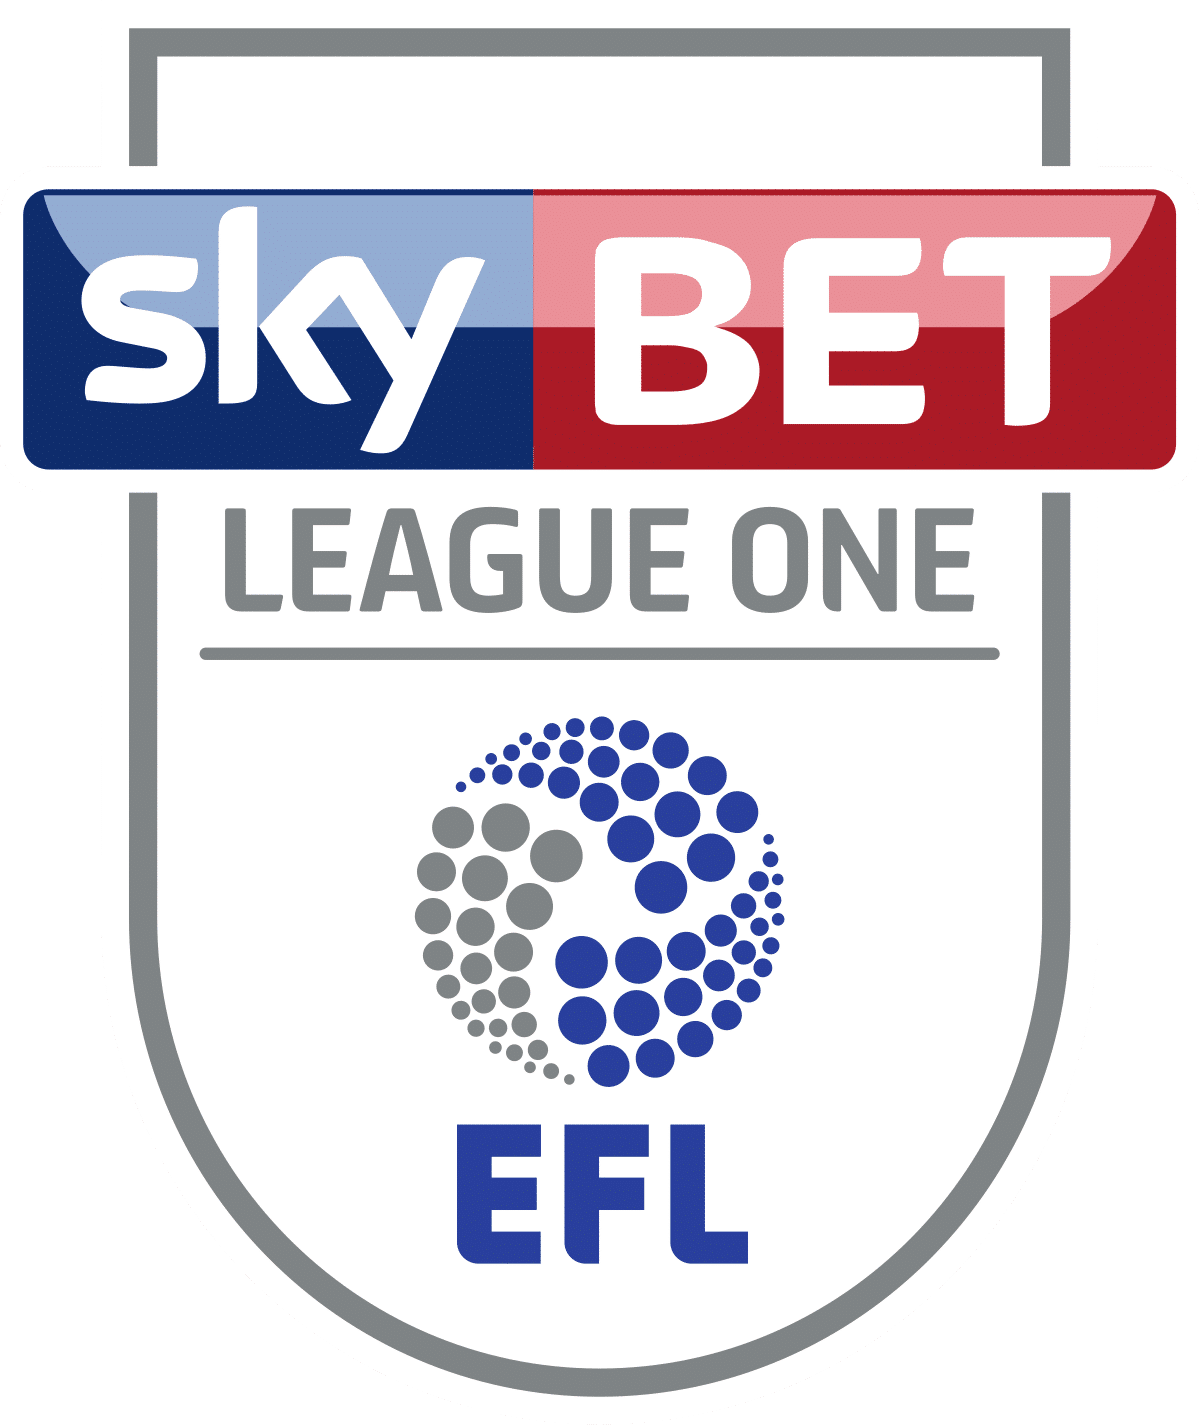 English league 1 betting tips aiding and abetting a criminal offence definition